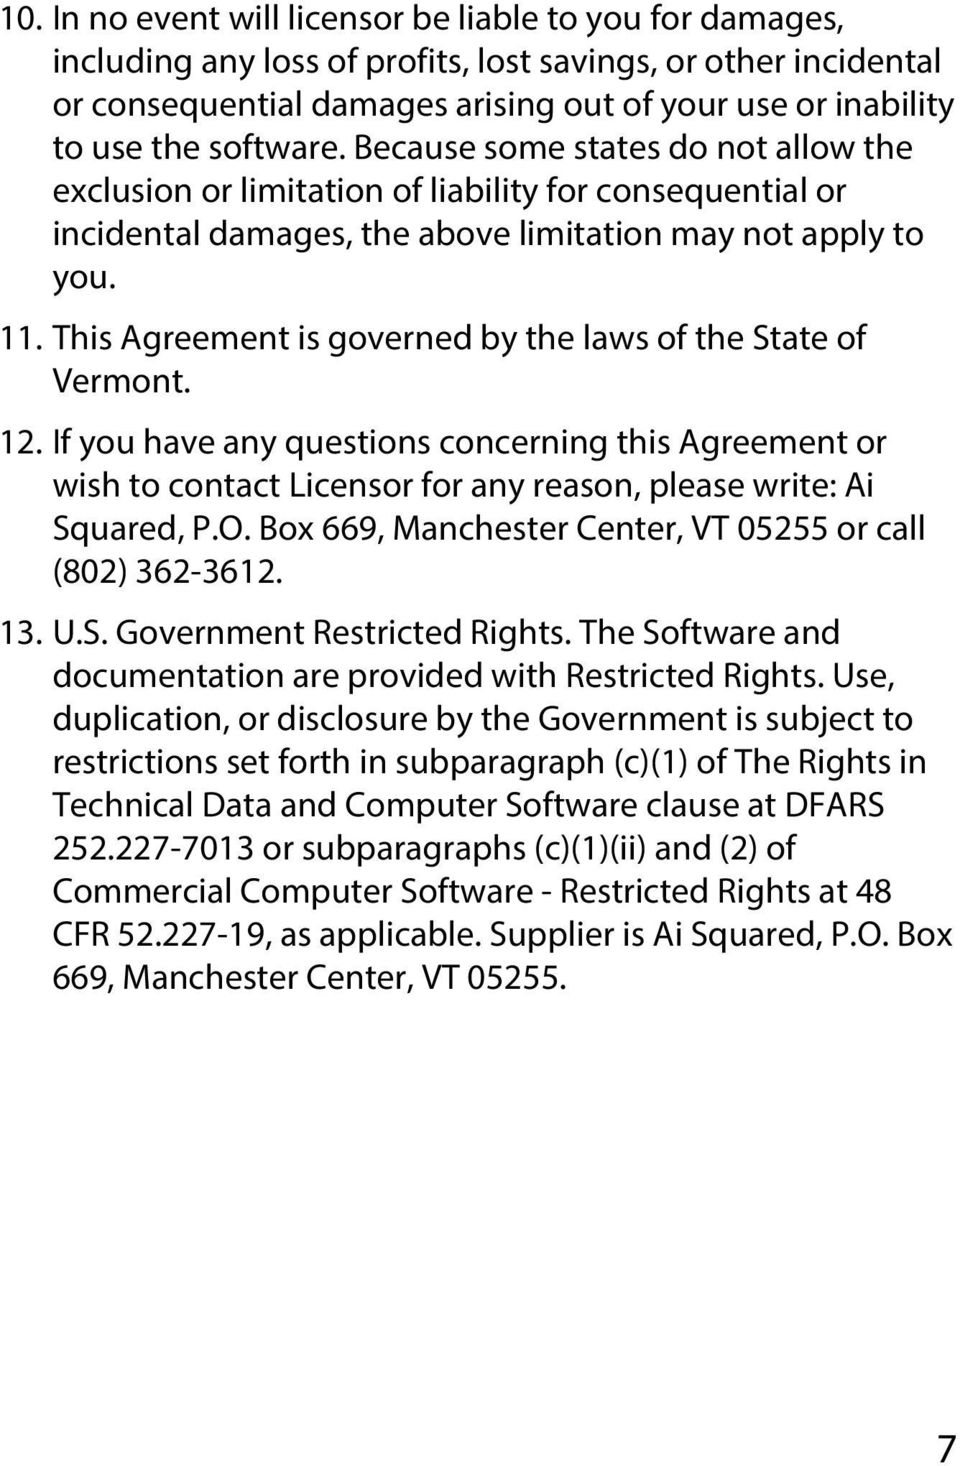 This Agreement is governed by the laws of the State of Vermont. 12. If you have any questions concerning this Agreement or wish to contact Licensor for any reason, please write: Ai Squared, P.O.